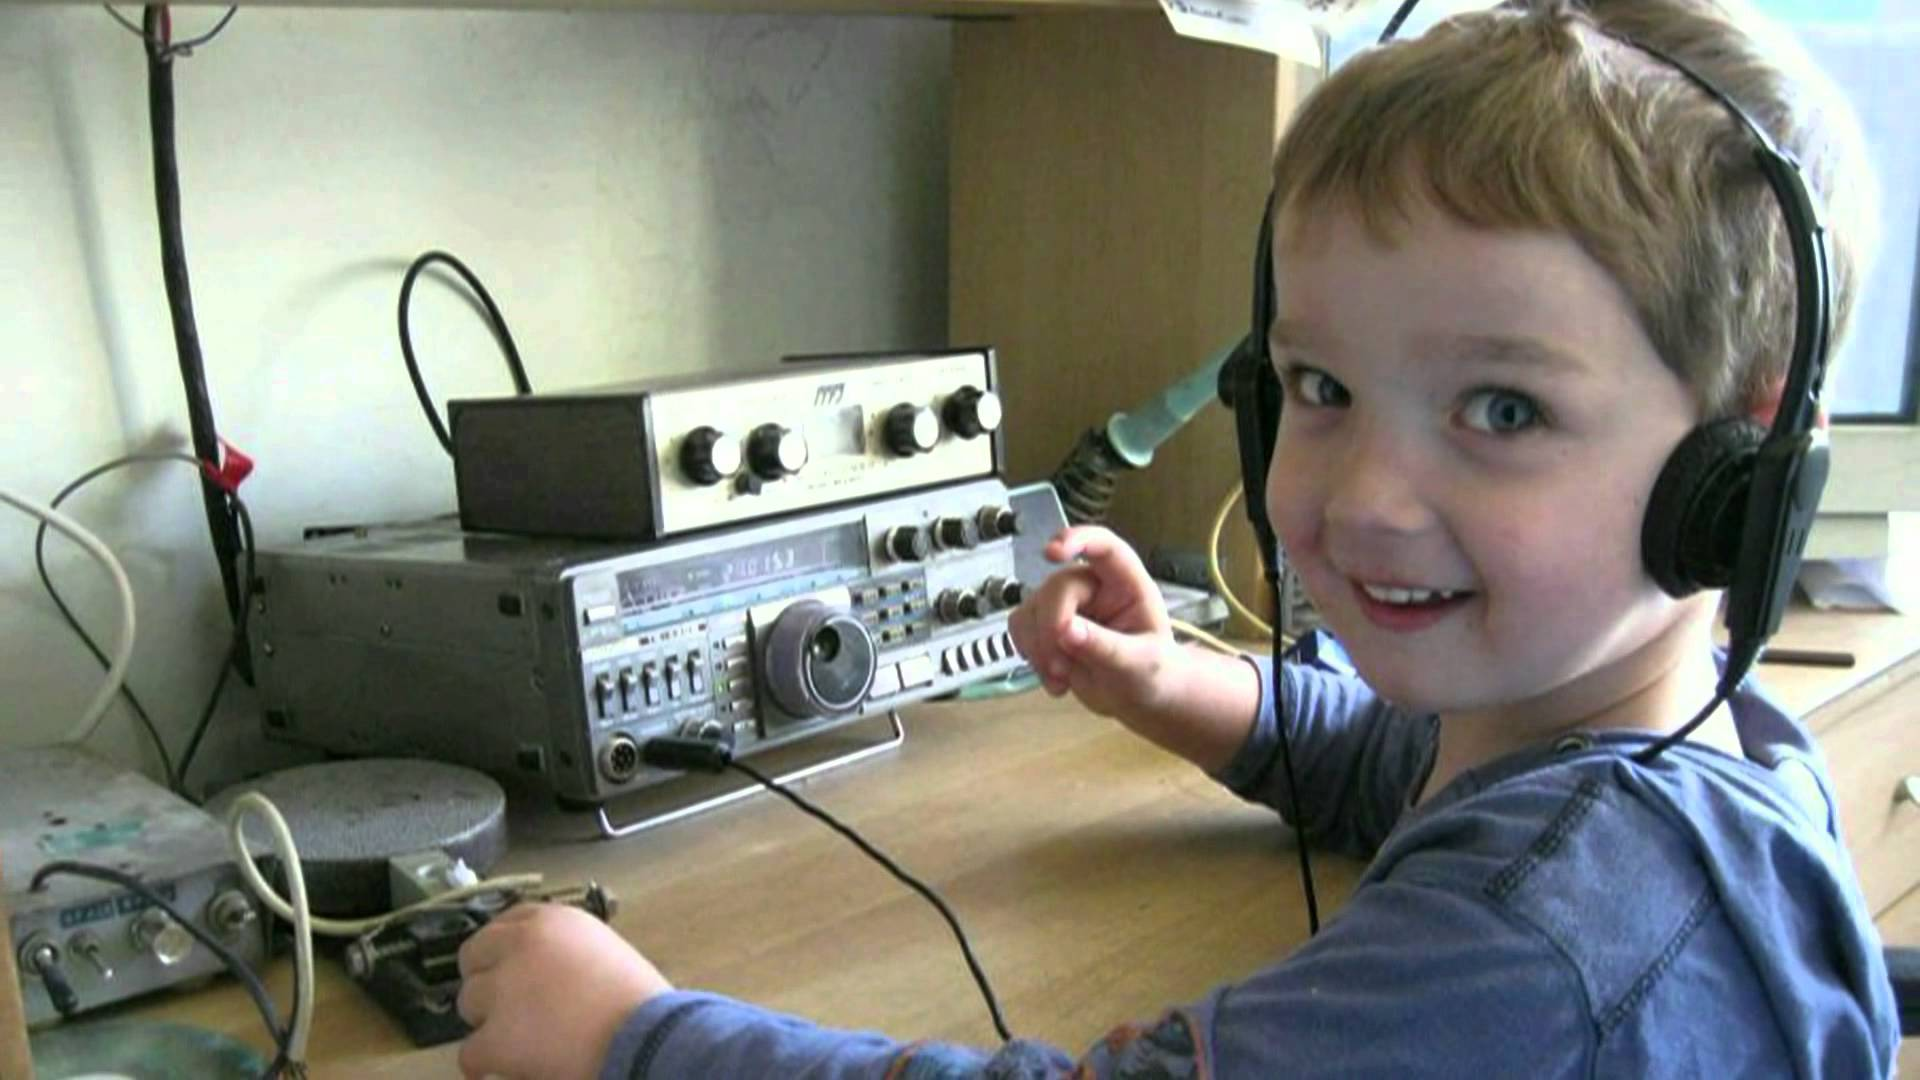 Code terms in amateur radio